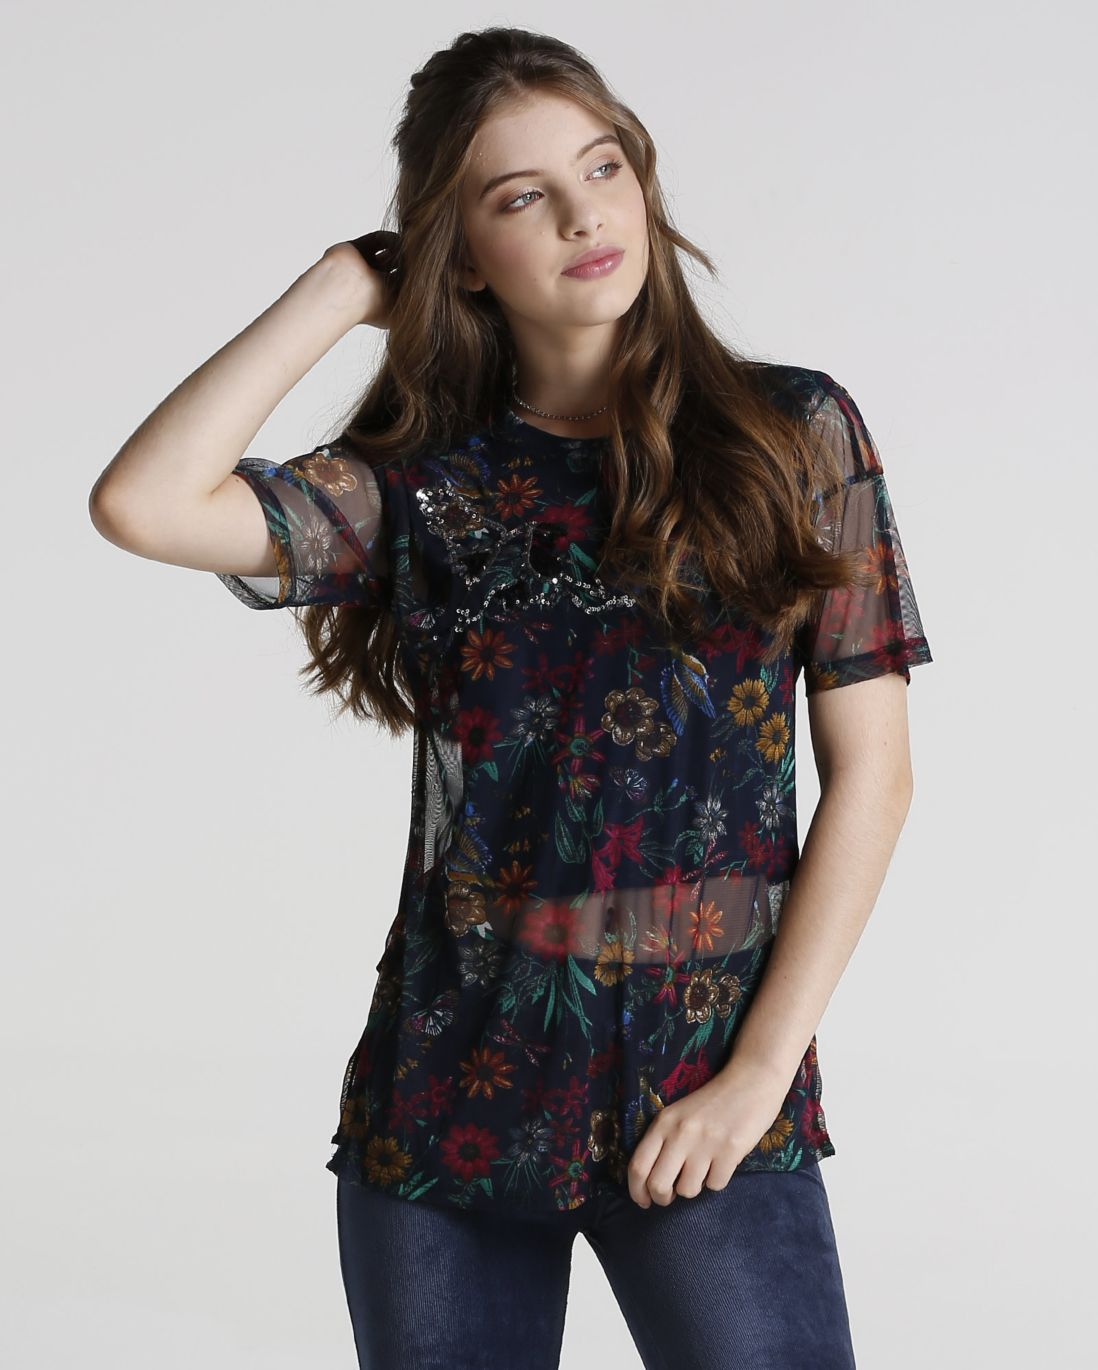 Blusa floral transparencia 12110957 foto1 frontal